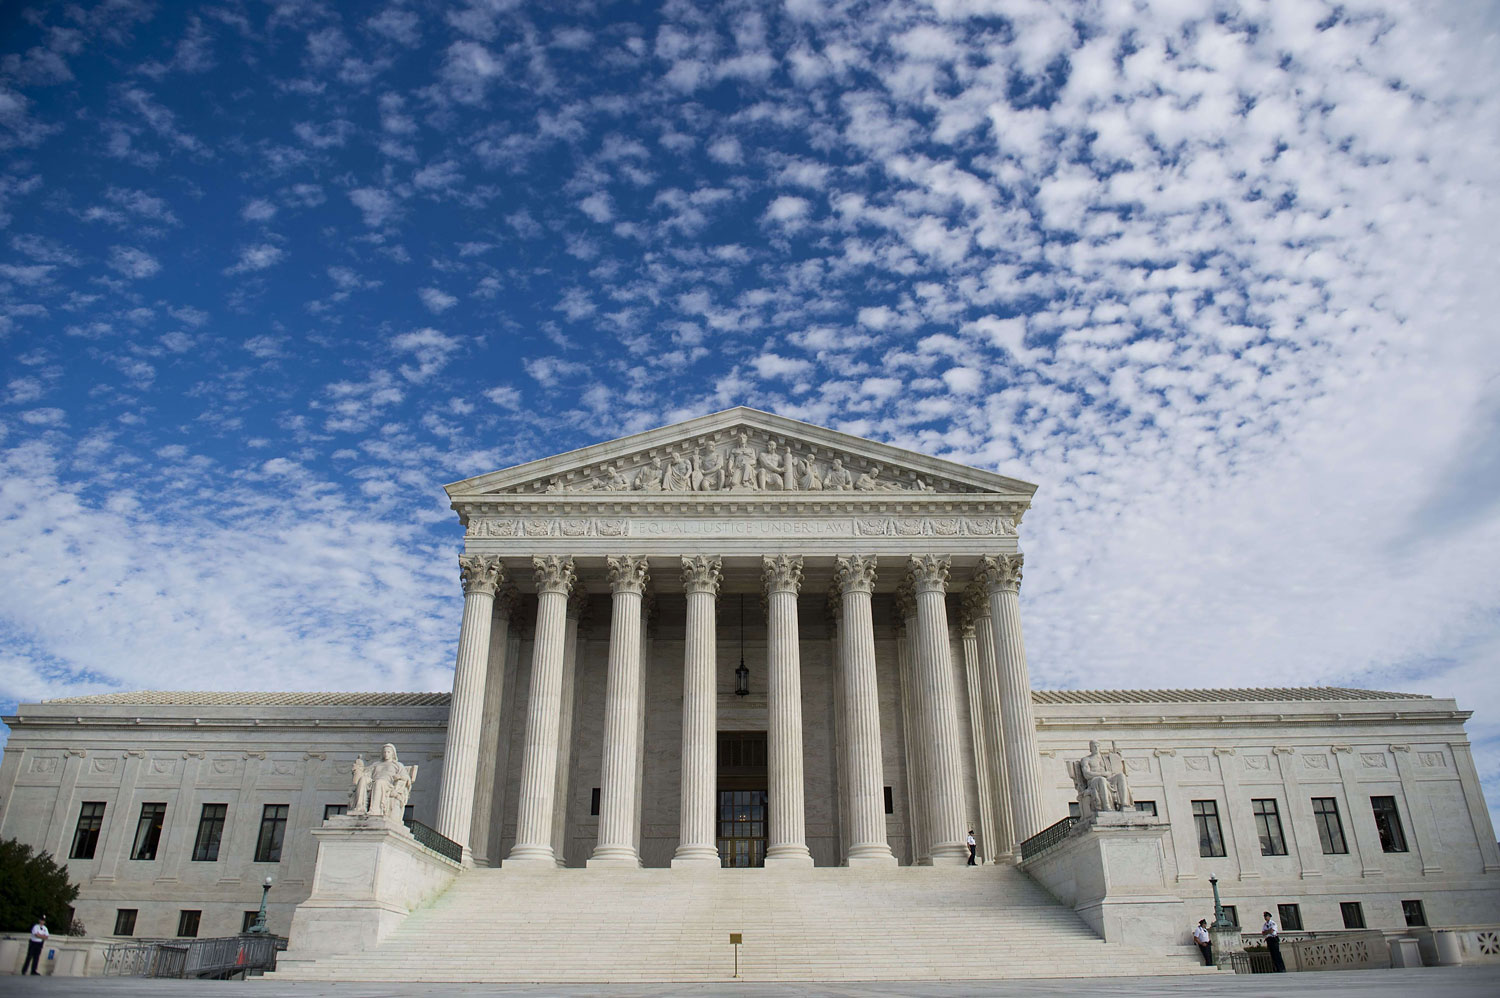 The Supreme Court in Washington, DC, seen in 2013.